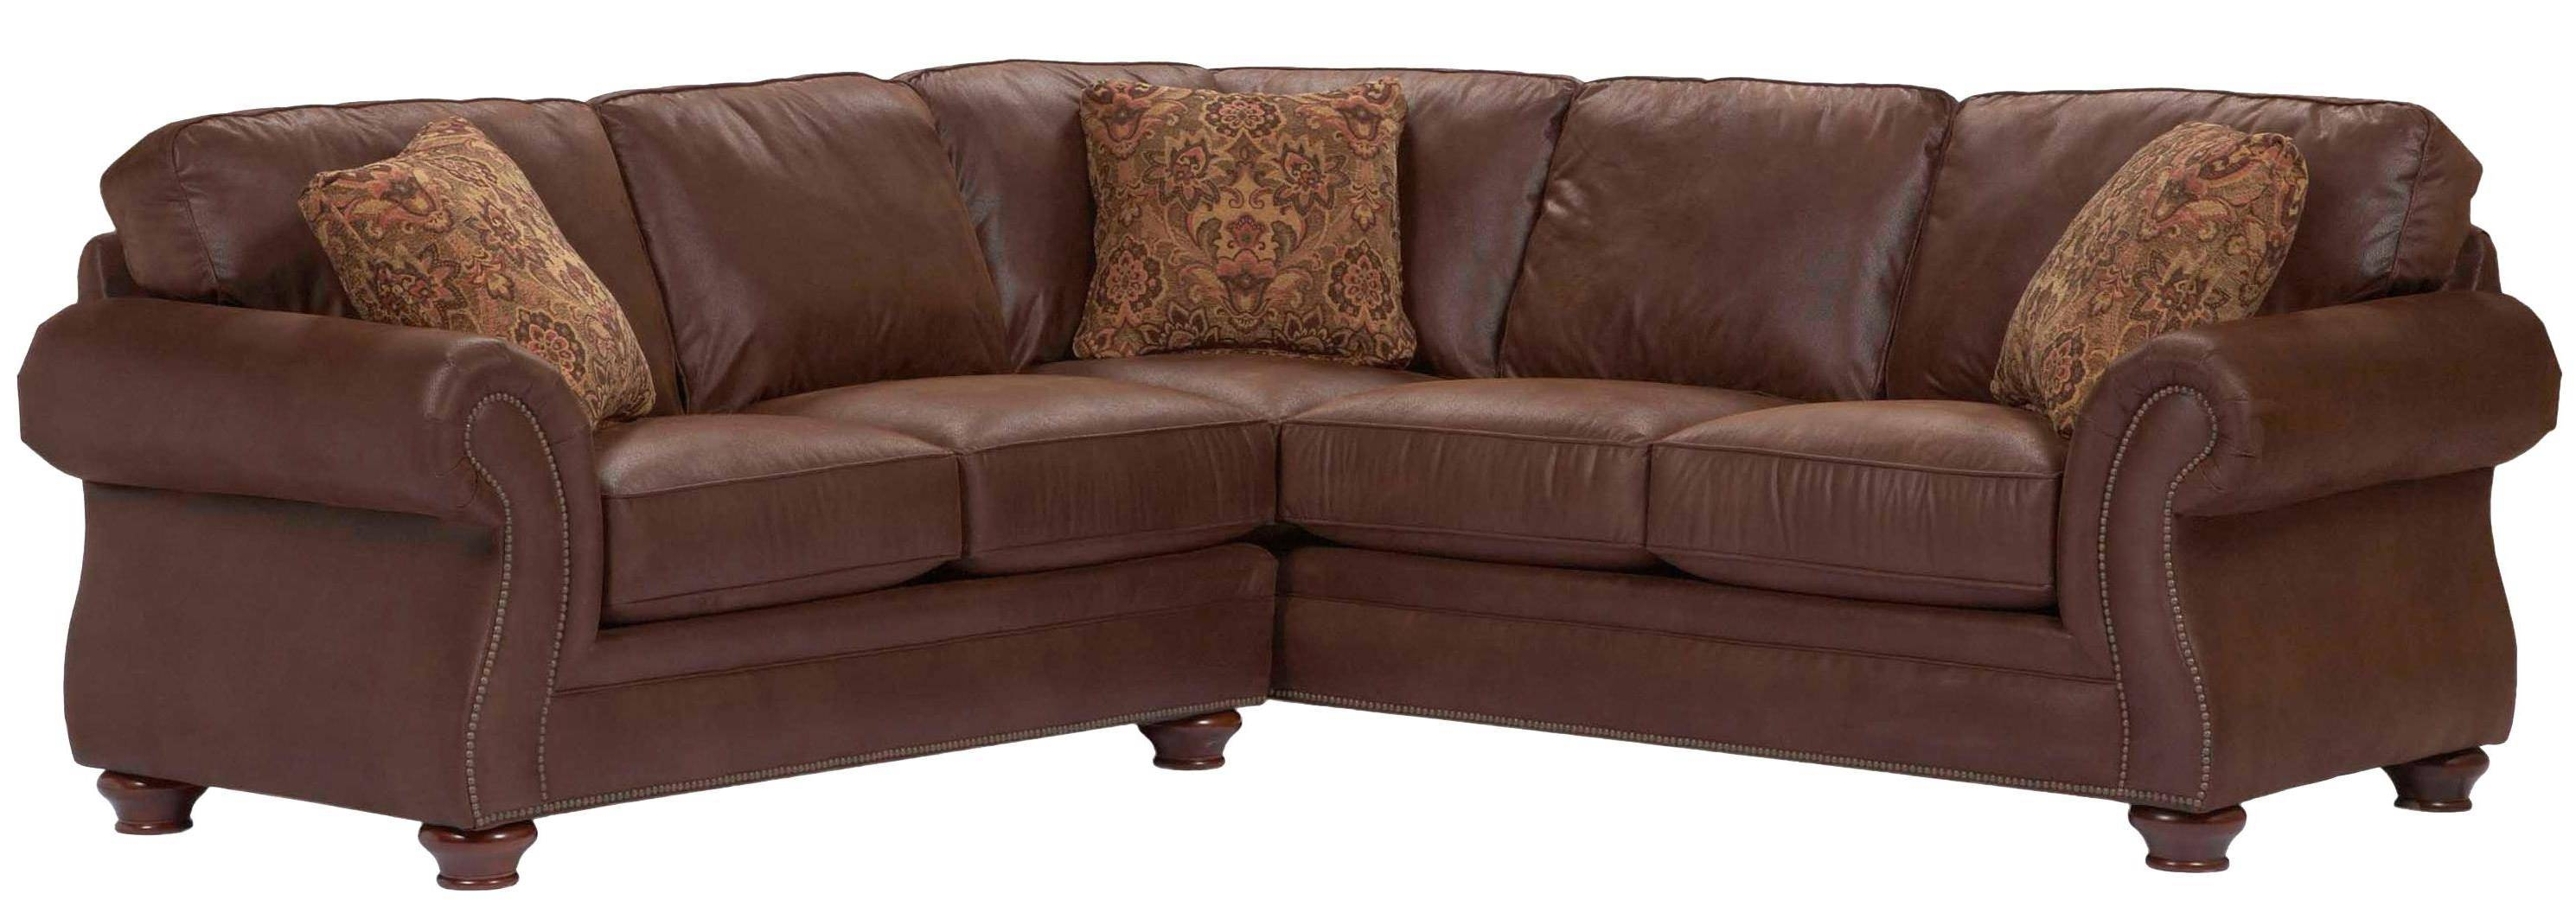 Broyhill Furniture Laramie 2 Piece Corner Sectional Sofa - Lindy's pertaining to Broyhill Sectional Sofas (Image 6 of 30)